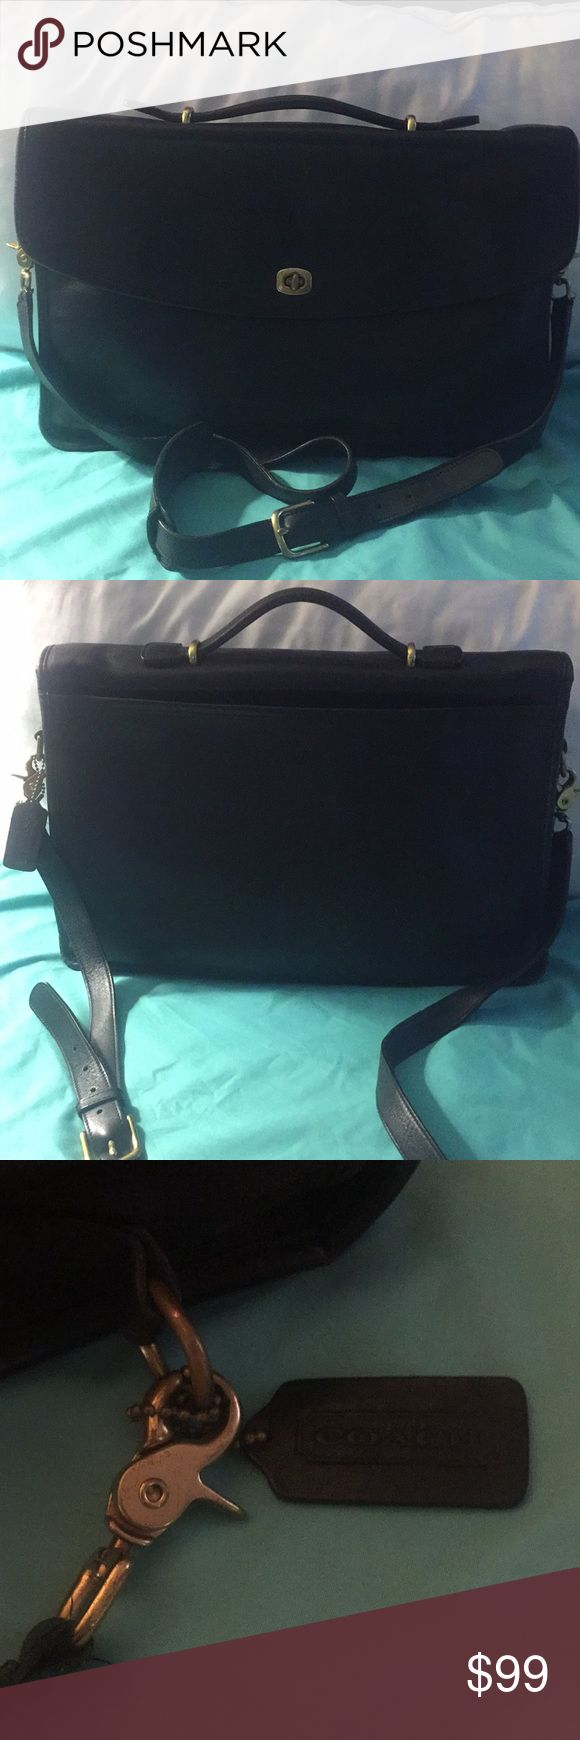 Coach Briefcase Coach briefcase in Black. Handle on top and adjustable strap. Outside large pocket. Inside large area with zip pocket and on other side pocket and pen pockets. Another large pocket in front of main compartment of briefcase. Coach Bags